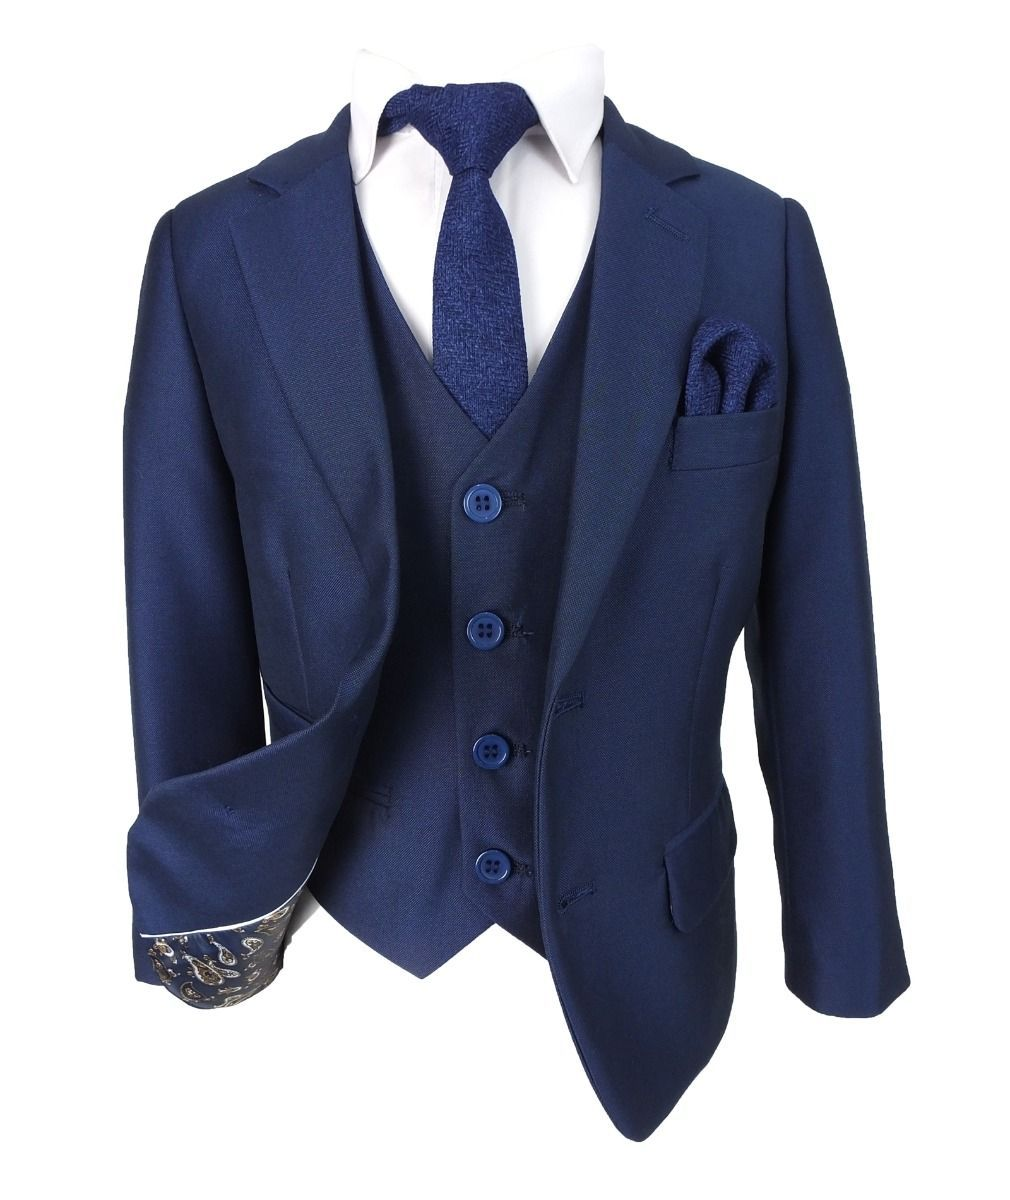 5010686388558f Boys Italian Tailored Cut French Navy Blue Suit in 2019 | Boys suits ...